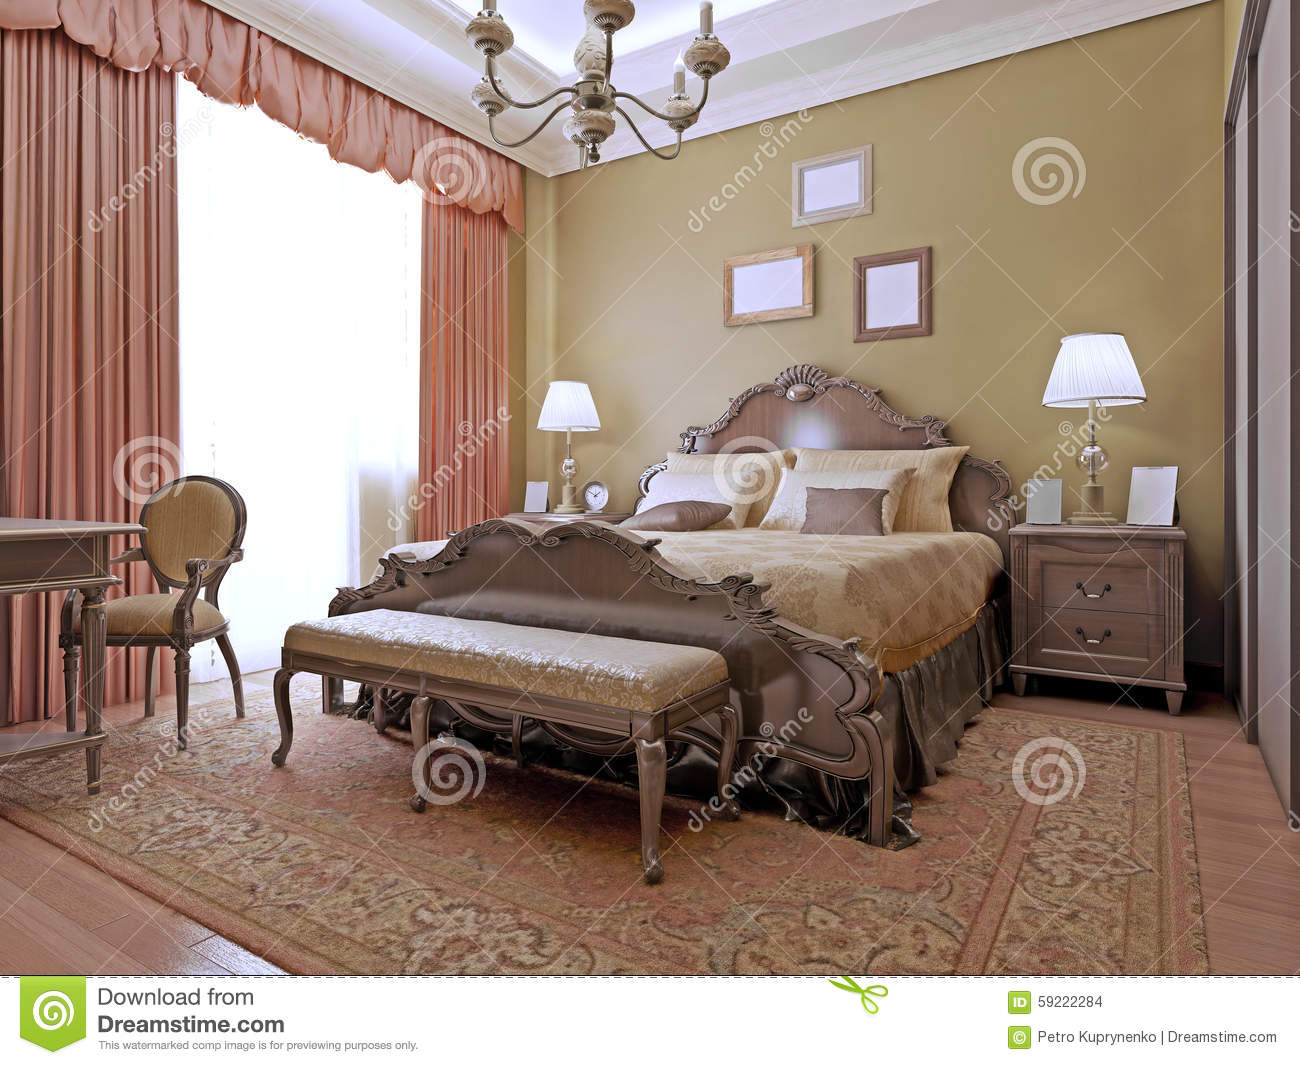 Art Deco Style Bedroom Expensive Bedroom Art Deco Style Stock Photo Image 59222284